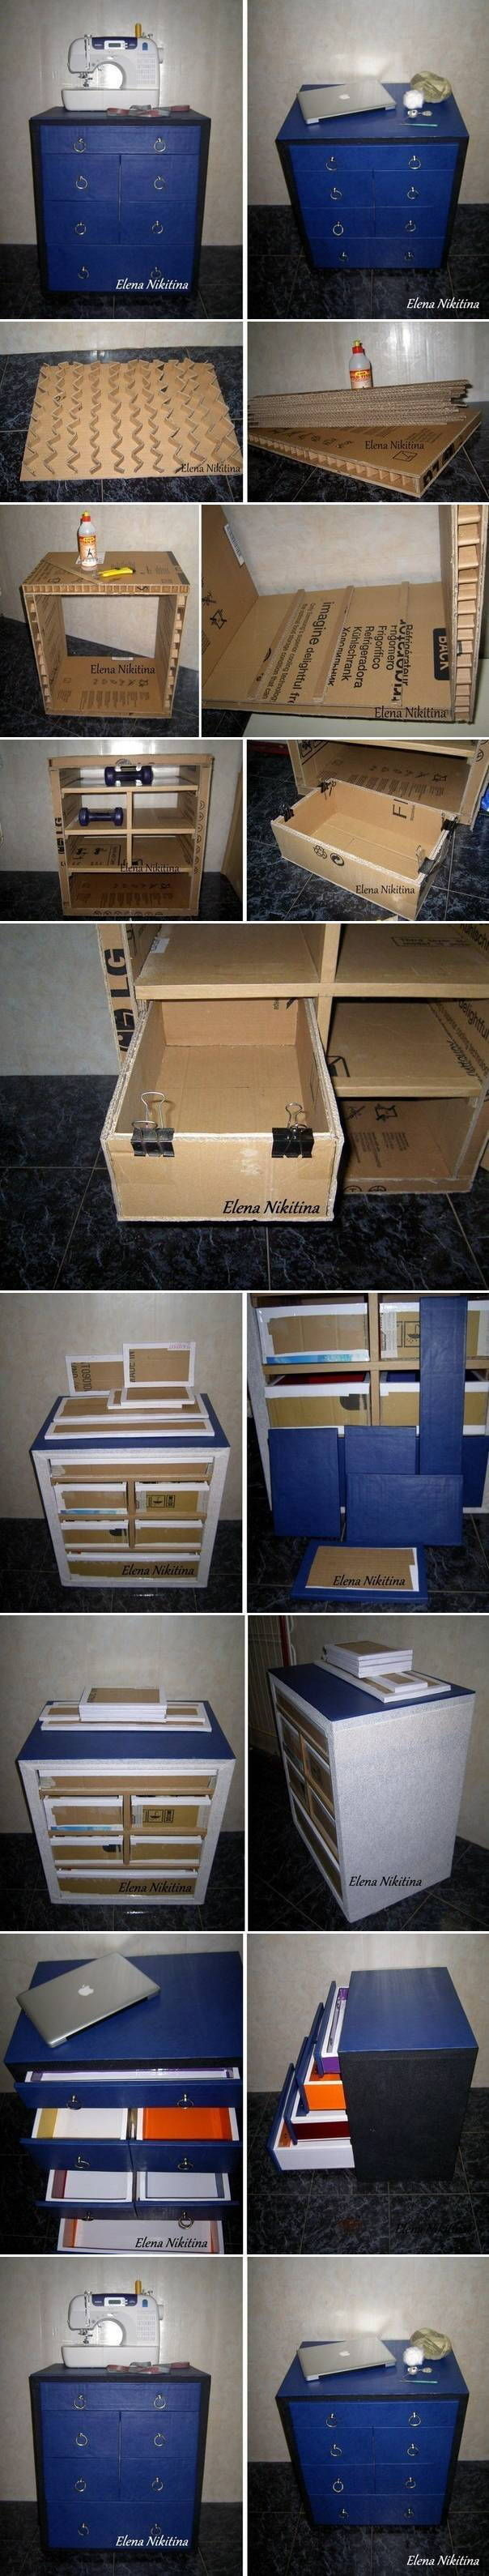 Diy Cardboard Chest With Drawers Pictures Photos And